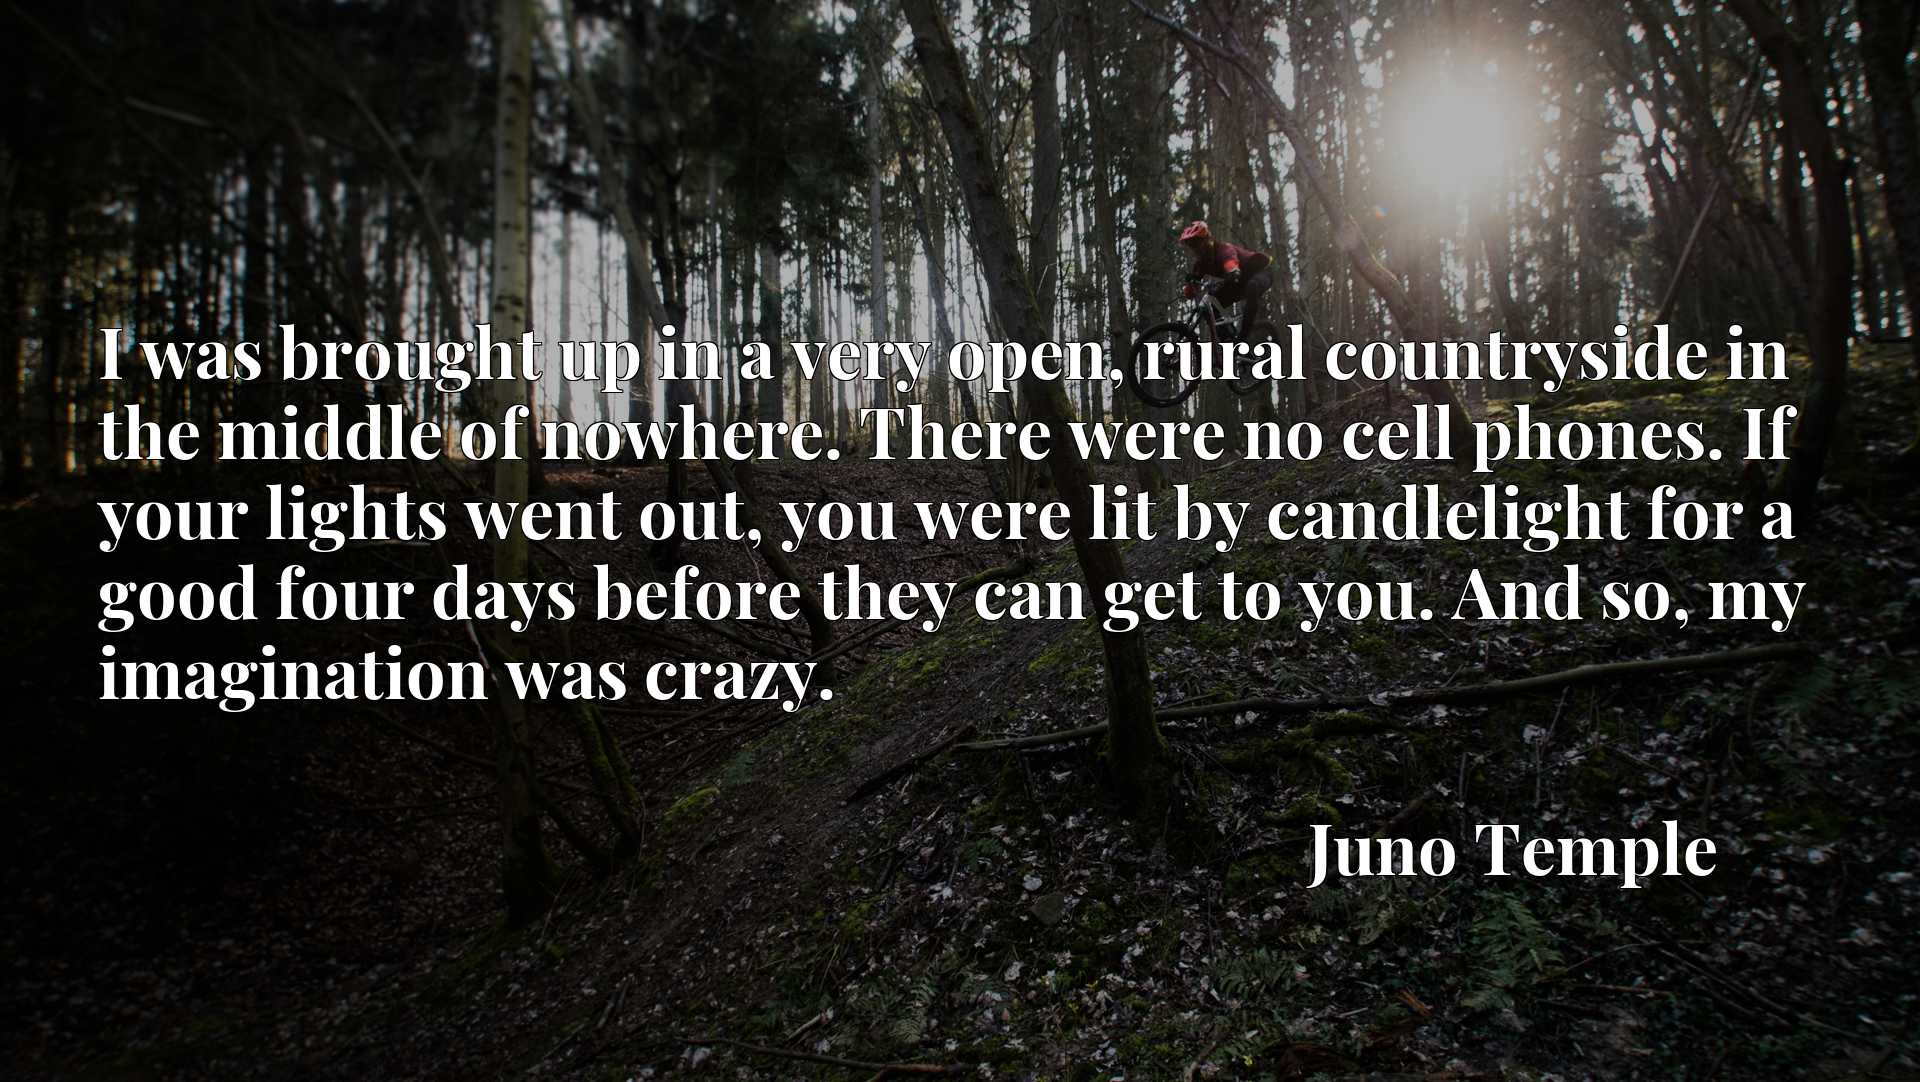 I was brought up in a very open, rural countryside in the middle of nowhere. There were no cell phones. If your lights went out, you were lit by candlelight for a good four days before they can get to you. And so, my imagination was crazy.